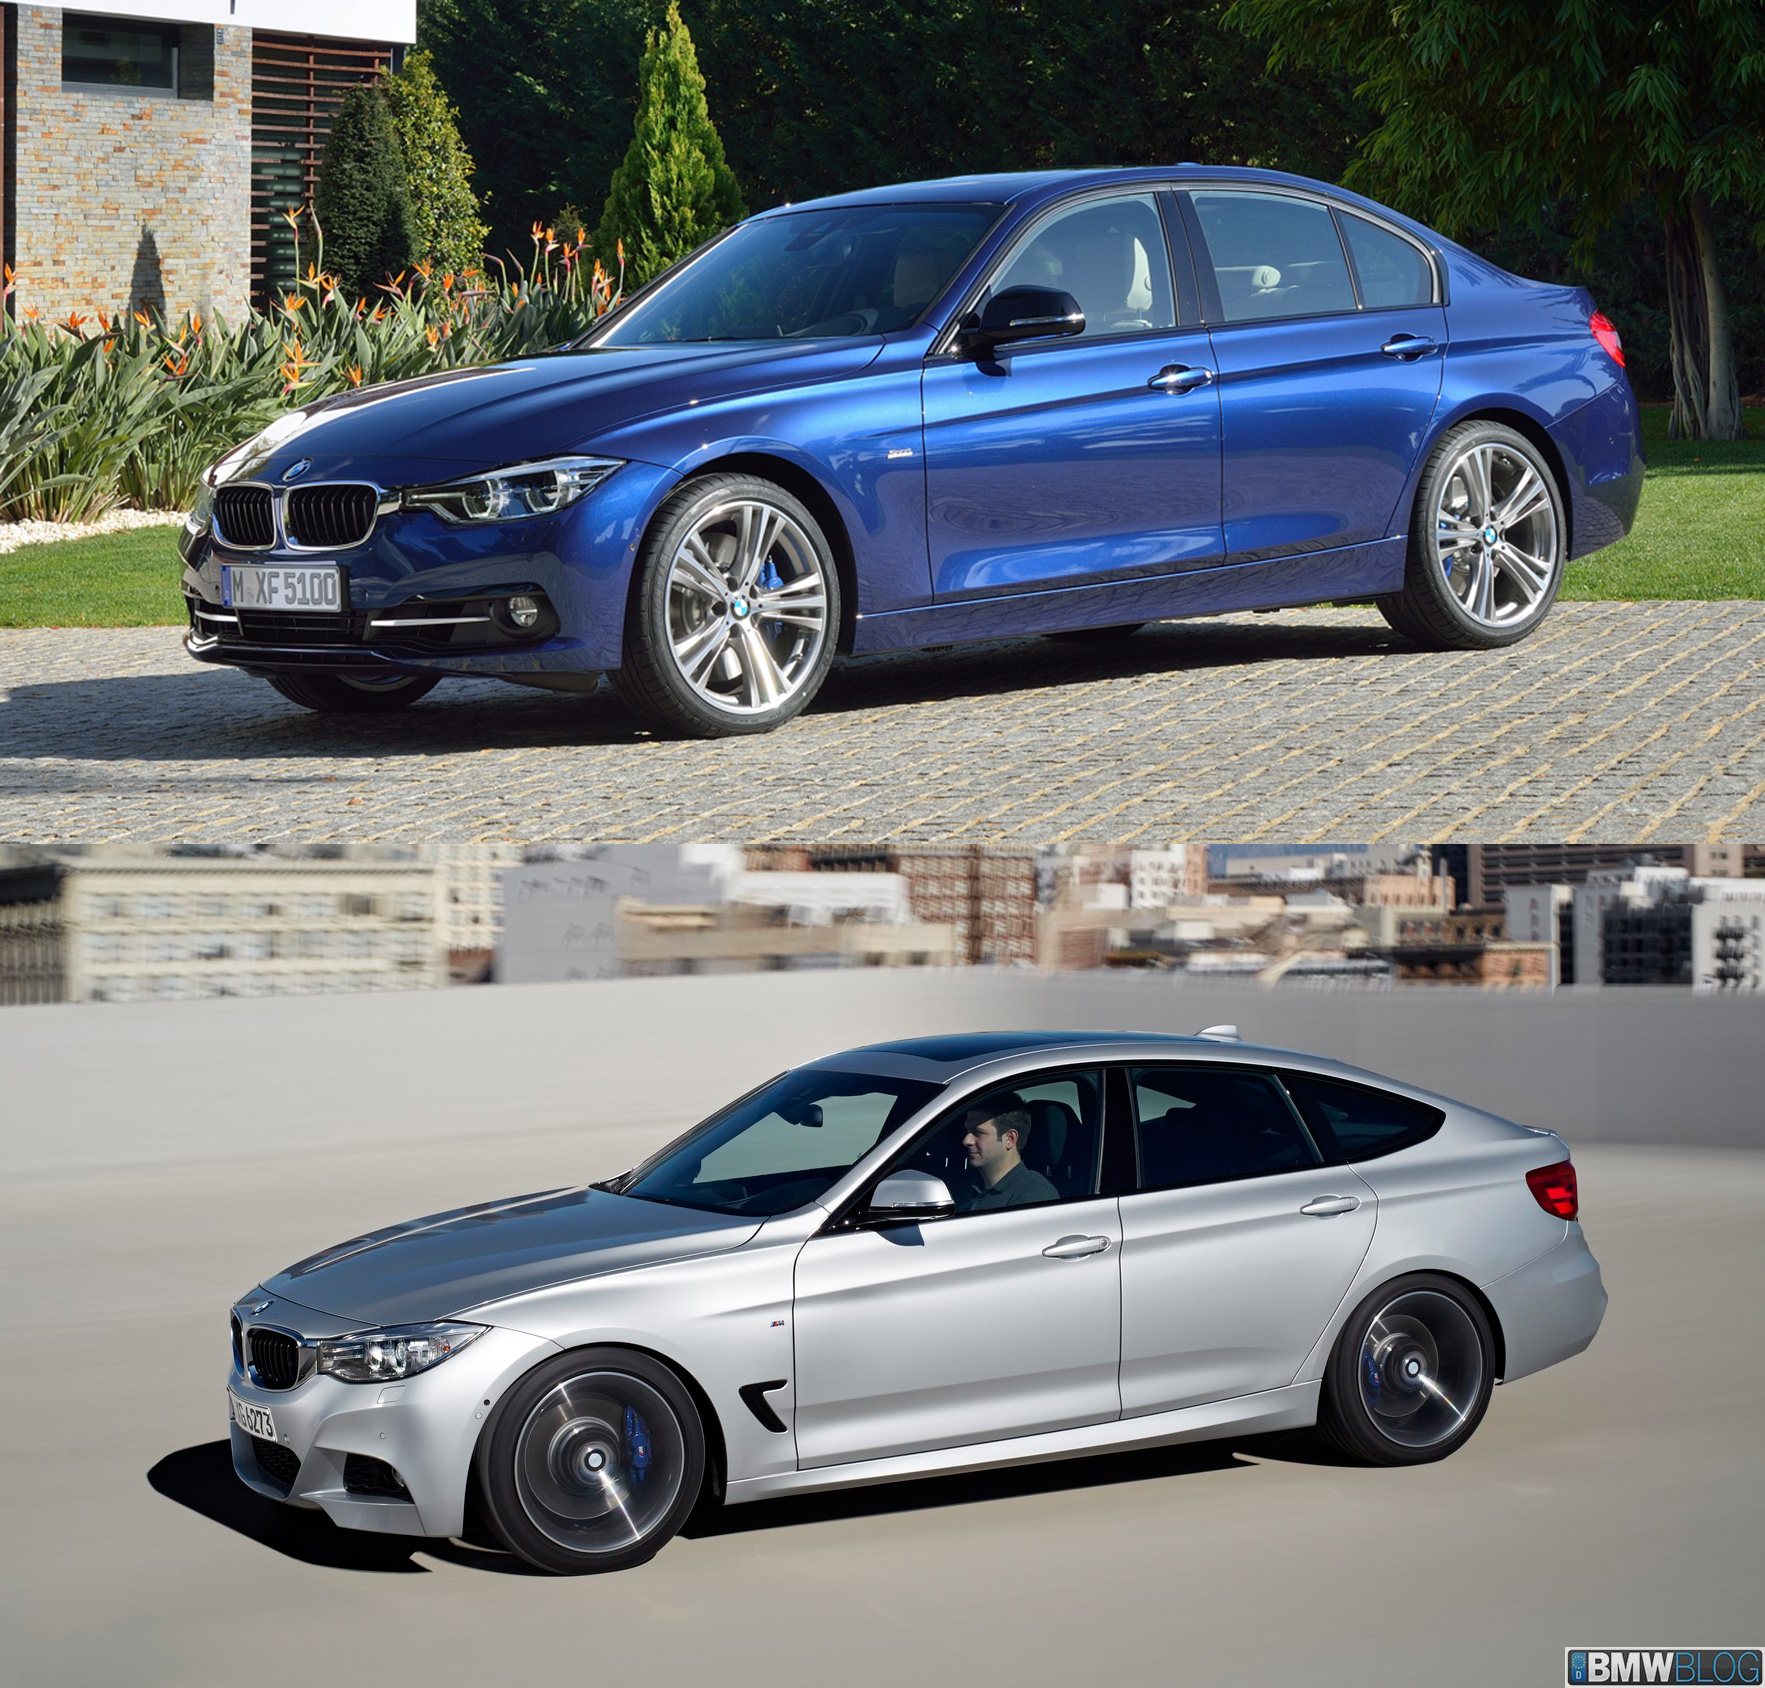 BMW 3 series sedan vs 3 series gran turismo